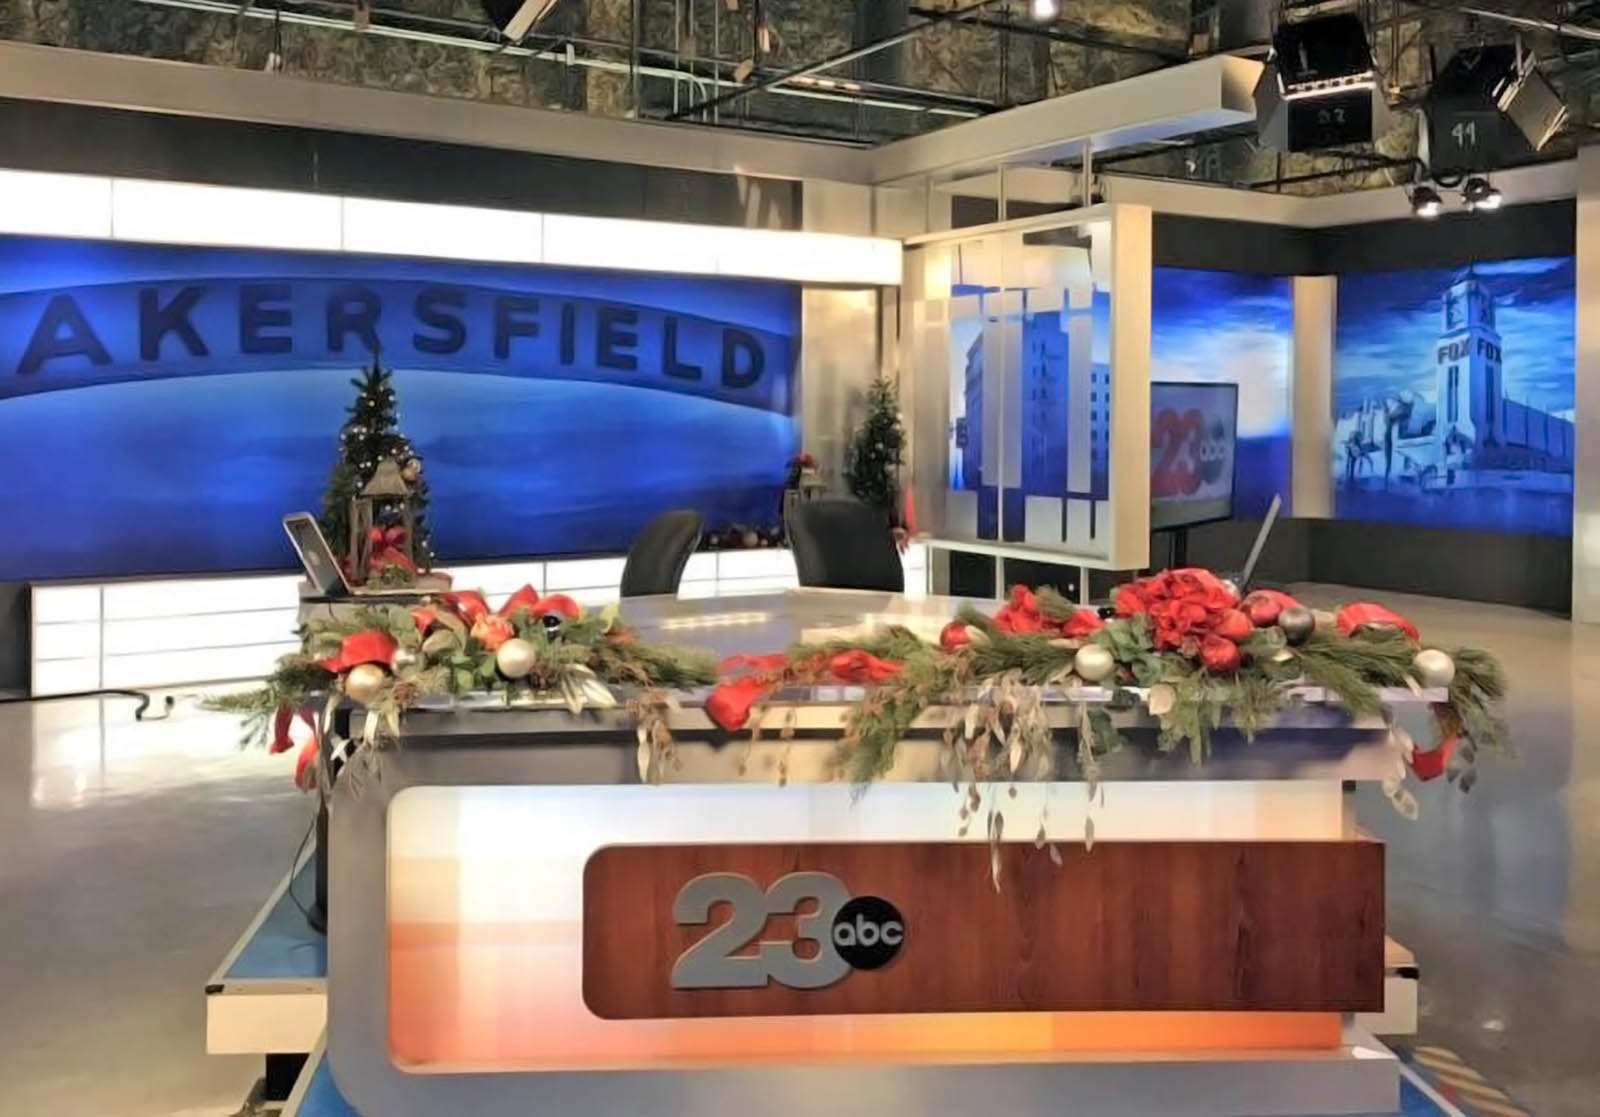 23 ABC News Bakersfield live streaming studio